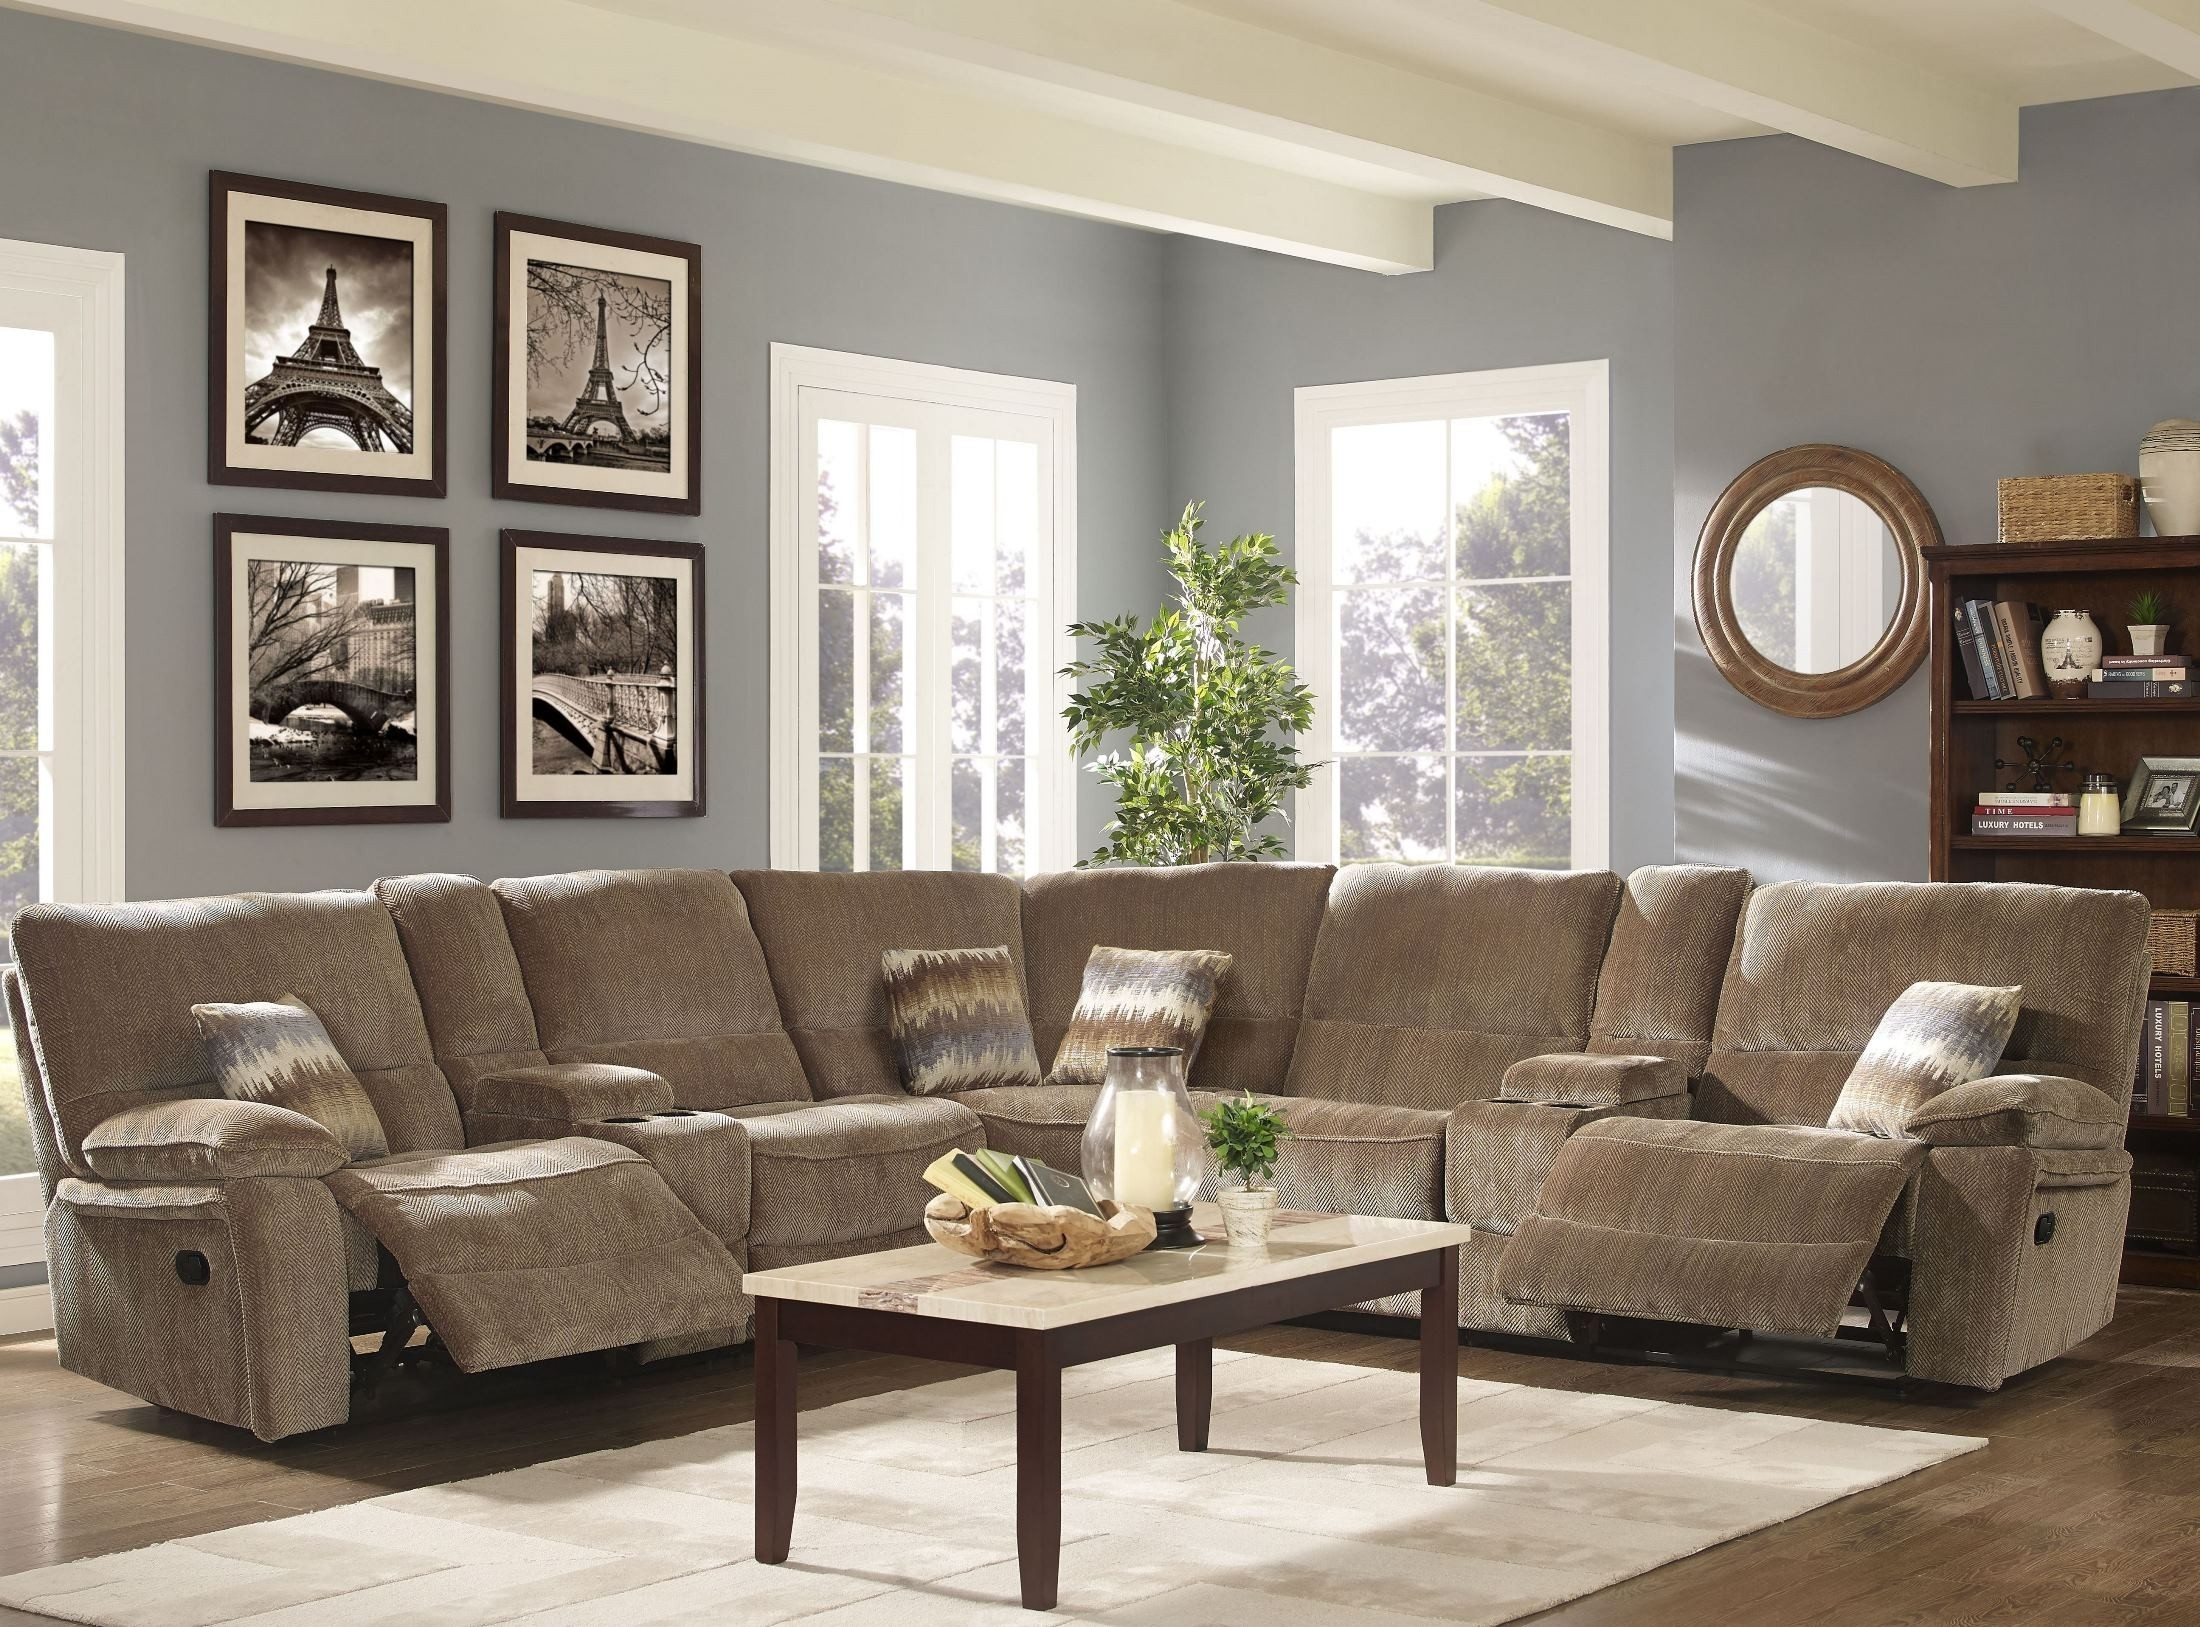 Ranger Bravo Sandalwood Power Reclining Sectional From New Classic Within Turdur 2 Piece Sectionals With Laf Loveseat (Image 21 of 25)